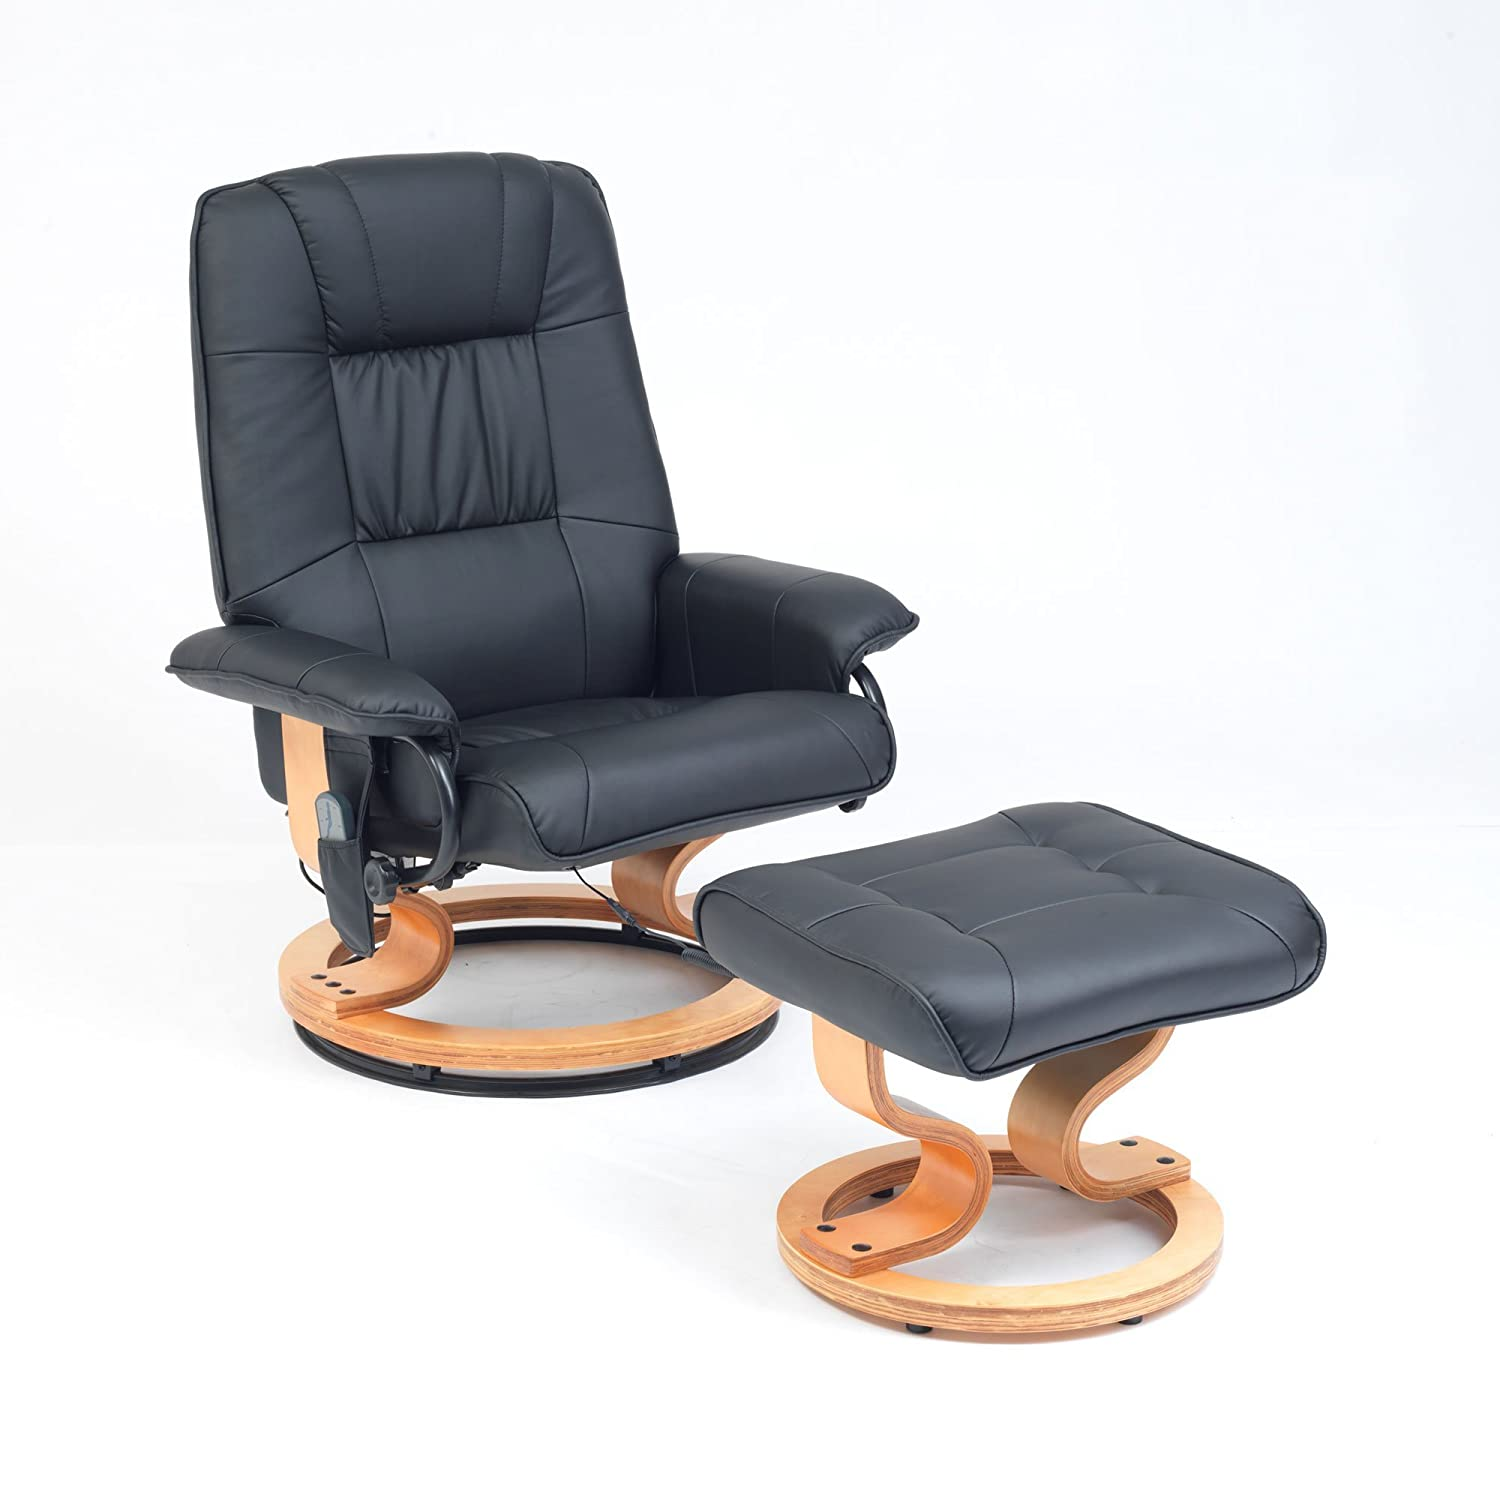 Heartwood Heat and Massage Chair with Free Stoo Black Amazon